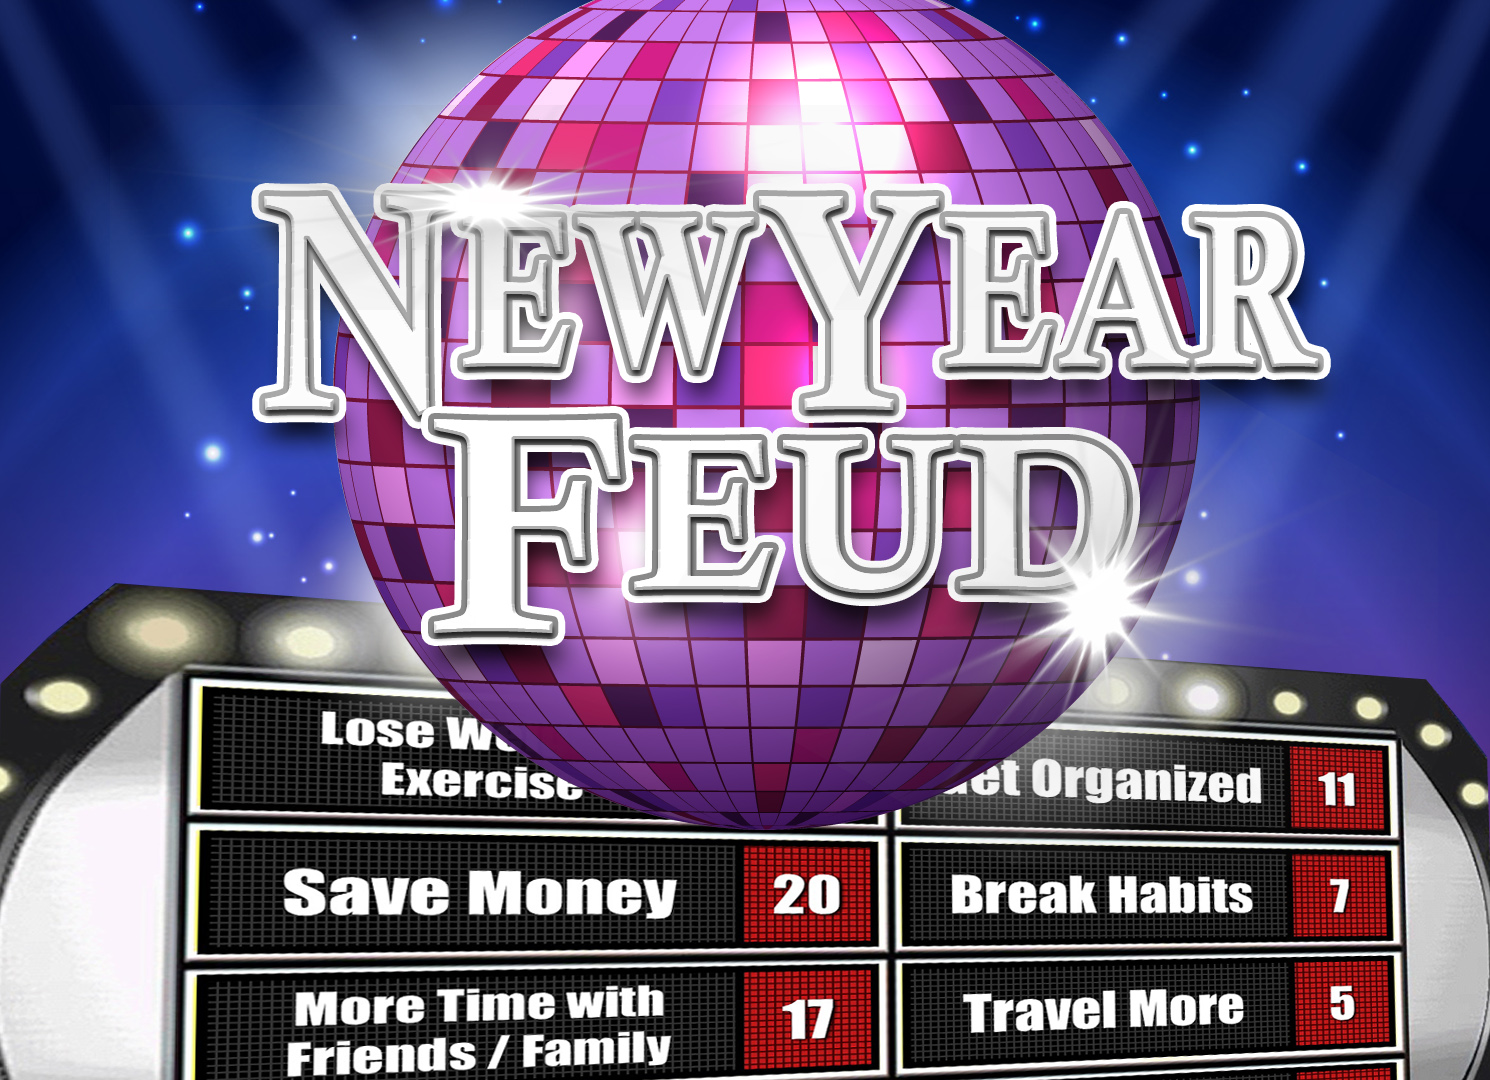 New Year's Eve Party Family Feud Trivia Powerpoint Game - Mac and PC Compatible